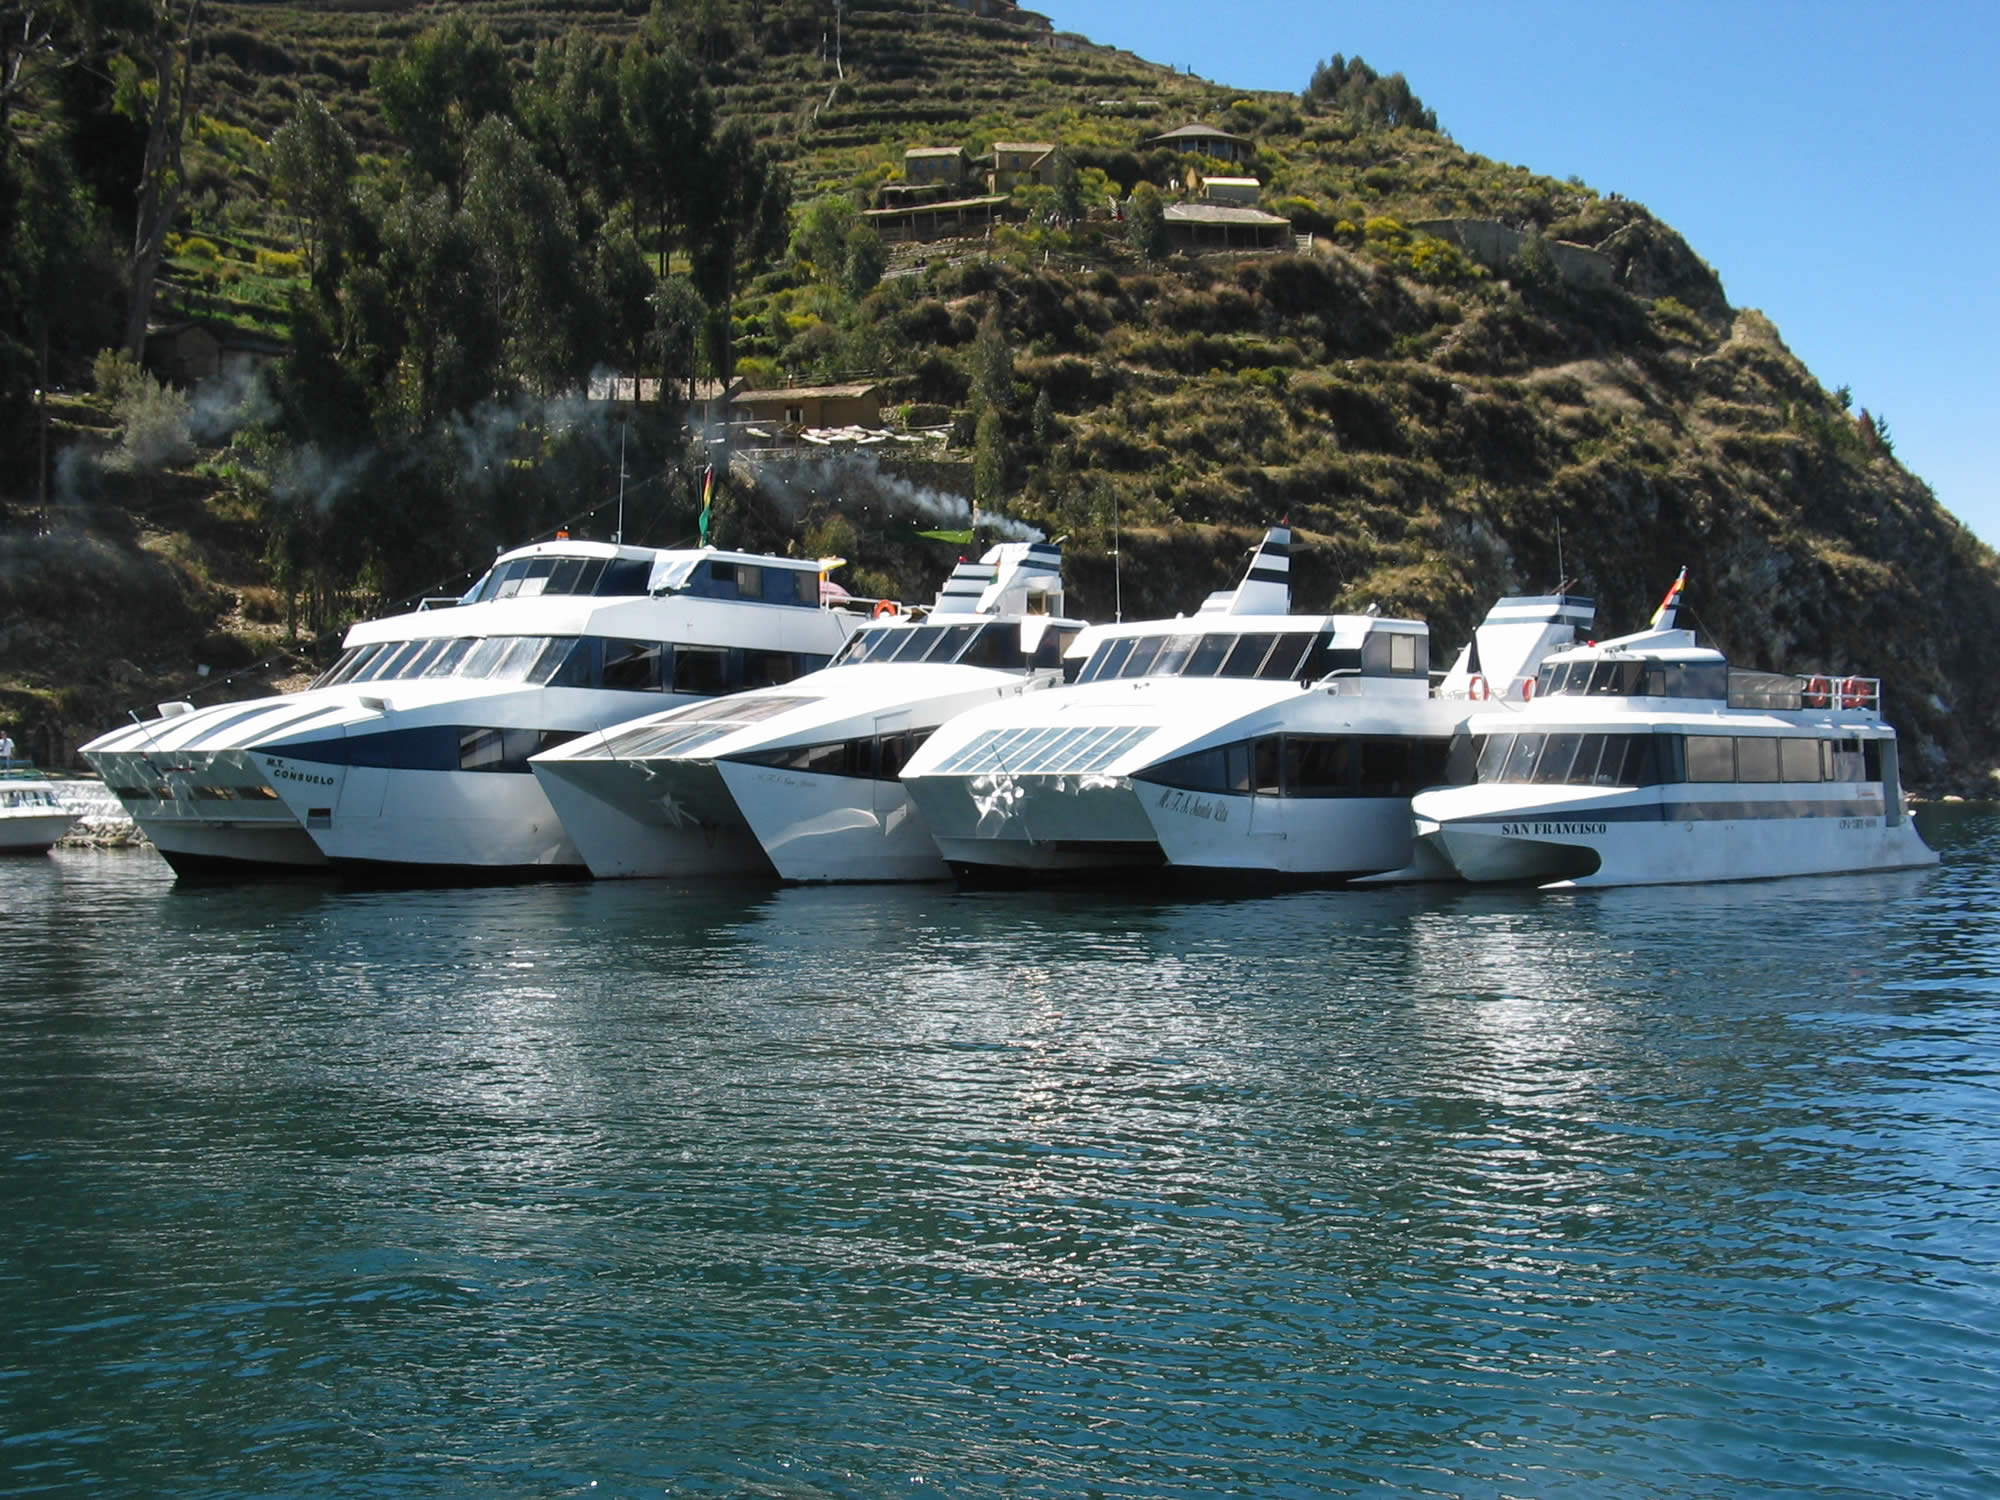 Special offer for New Year - Catamaran La Paz - Isla del sol - La Paz , 2 Days 1 Night